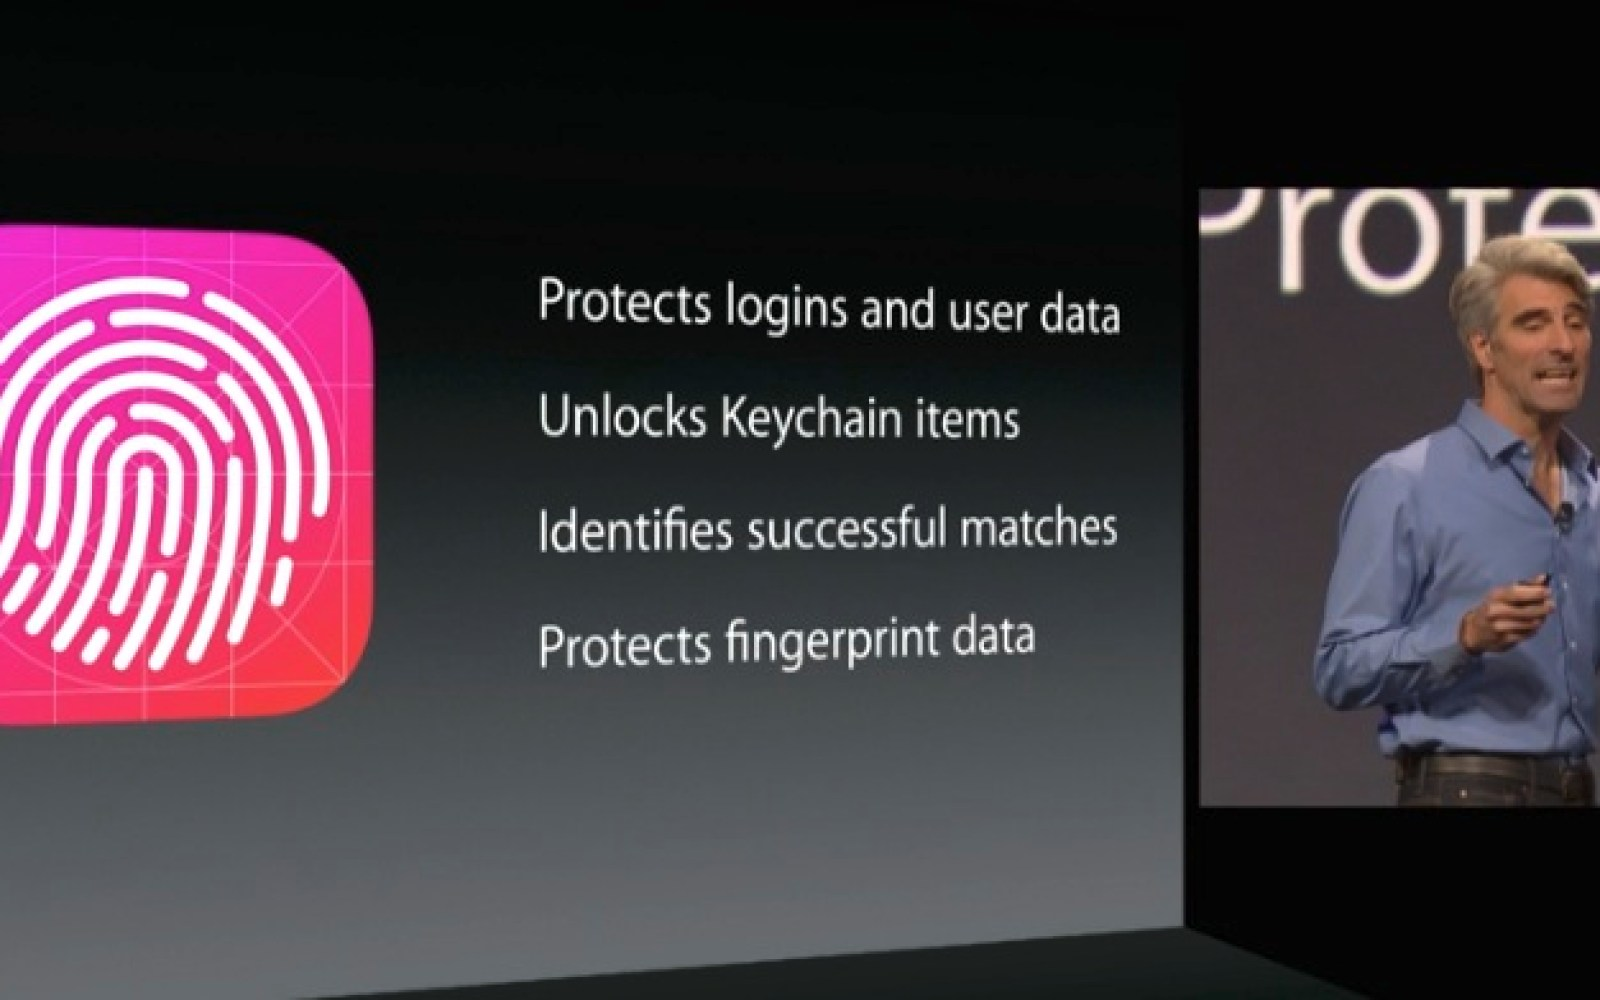 PayPal reportedly planning to integrate iOS 8's Touch ID API in mobile payment app